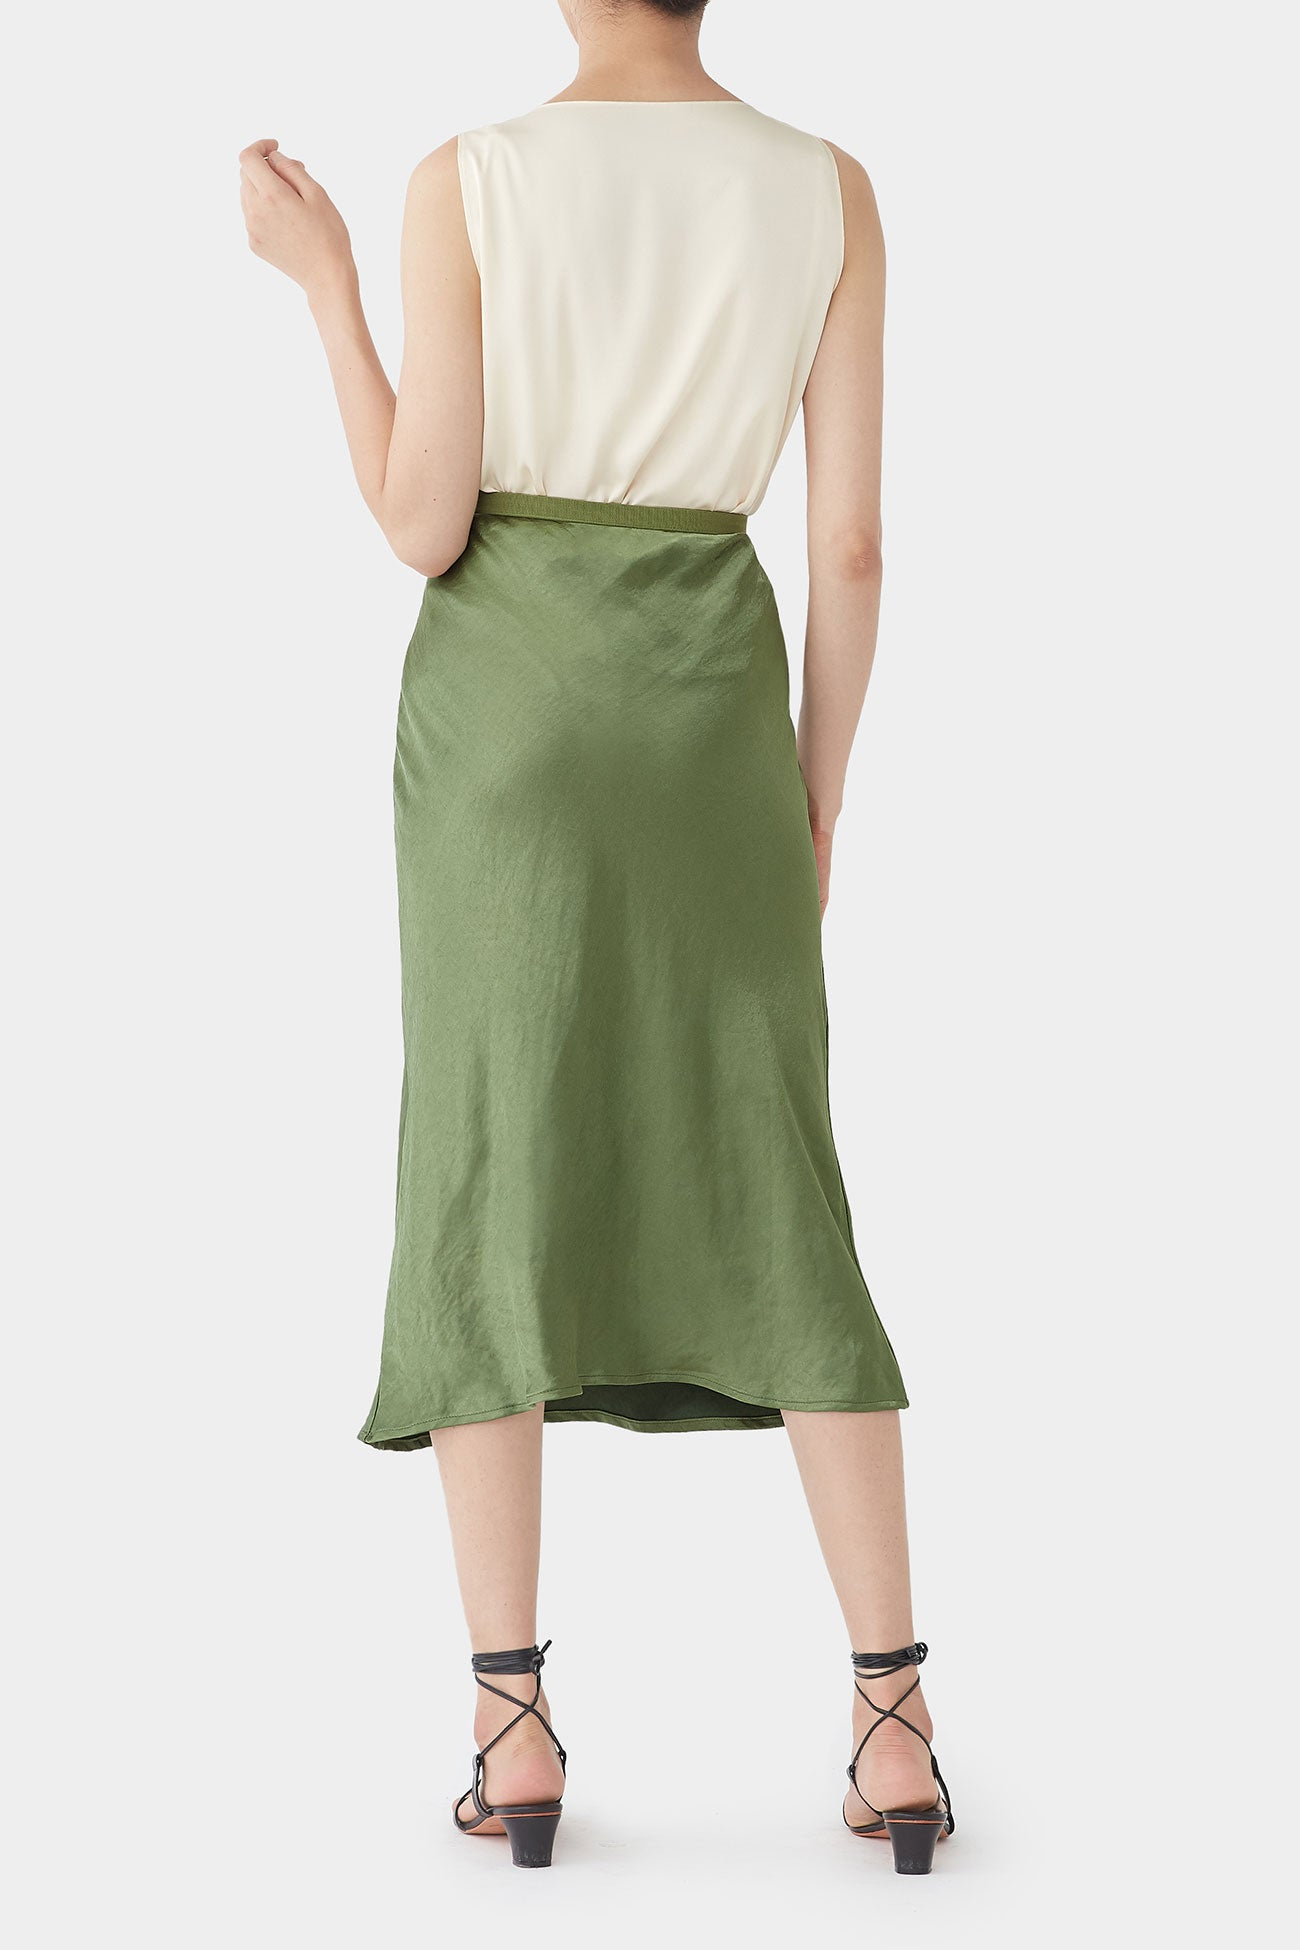 FOREST GEORGINA SATIN BANDING SKIRT